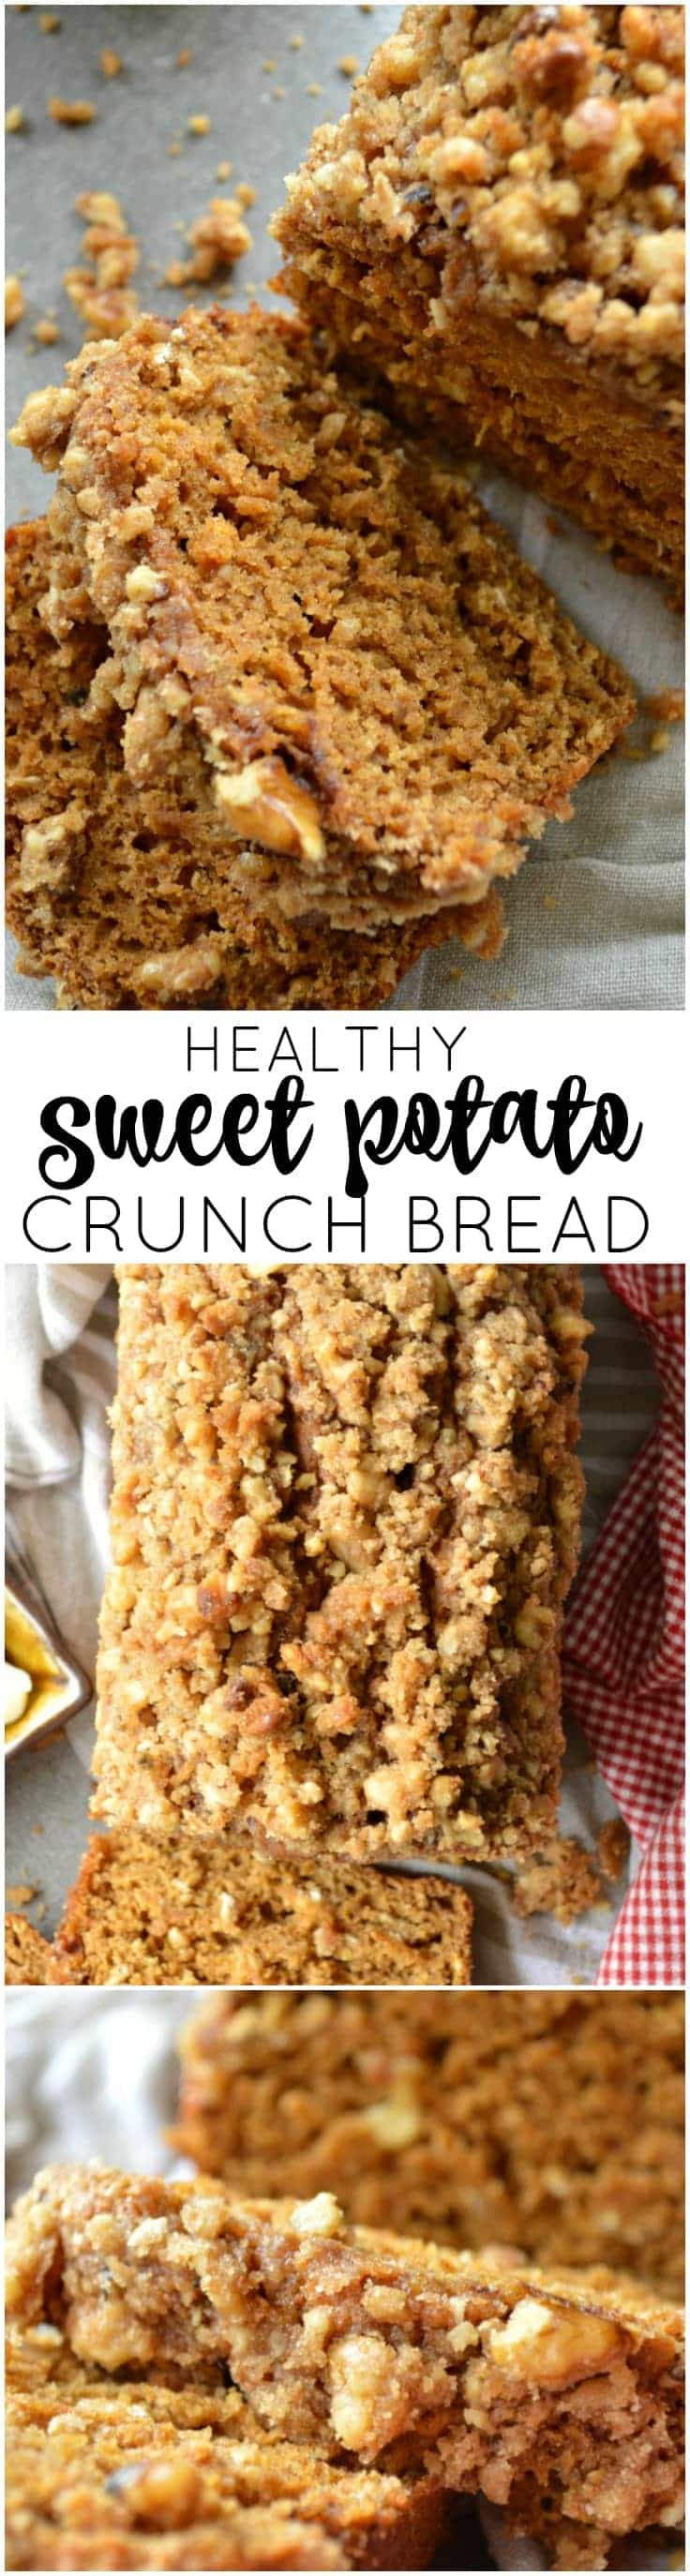 This Healthy Sweet Potato Crunch Bread uses unsweetened applesauce and mashed sweet potatoes for a wholesome treat that will satisfy your sweet tooth!